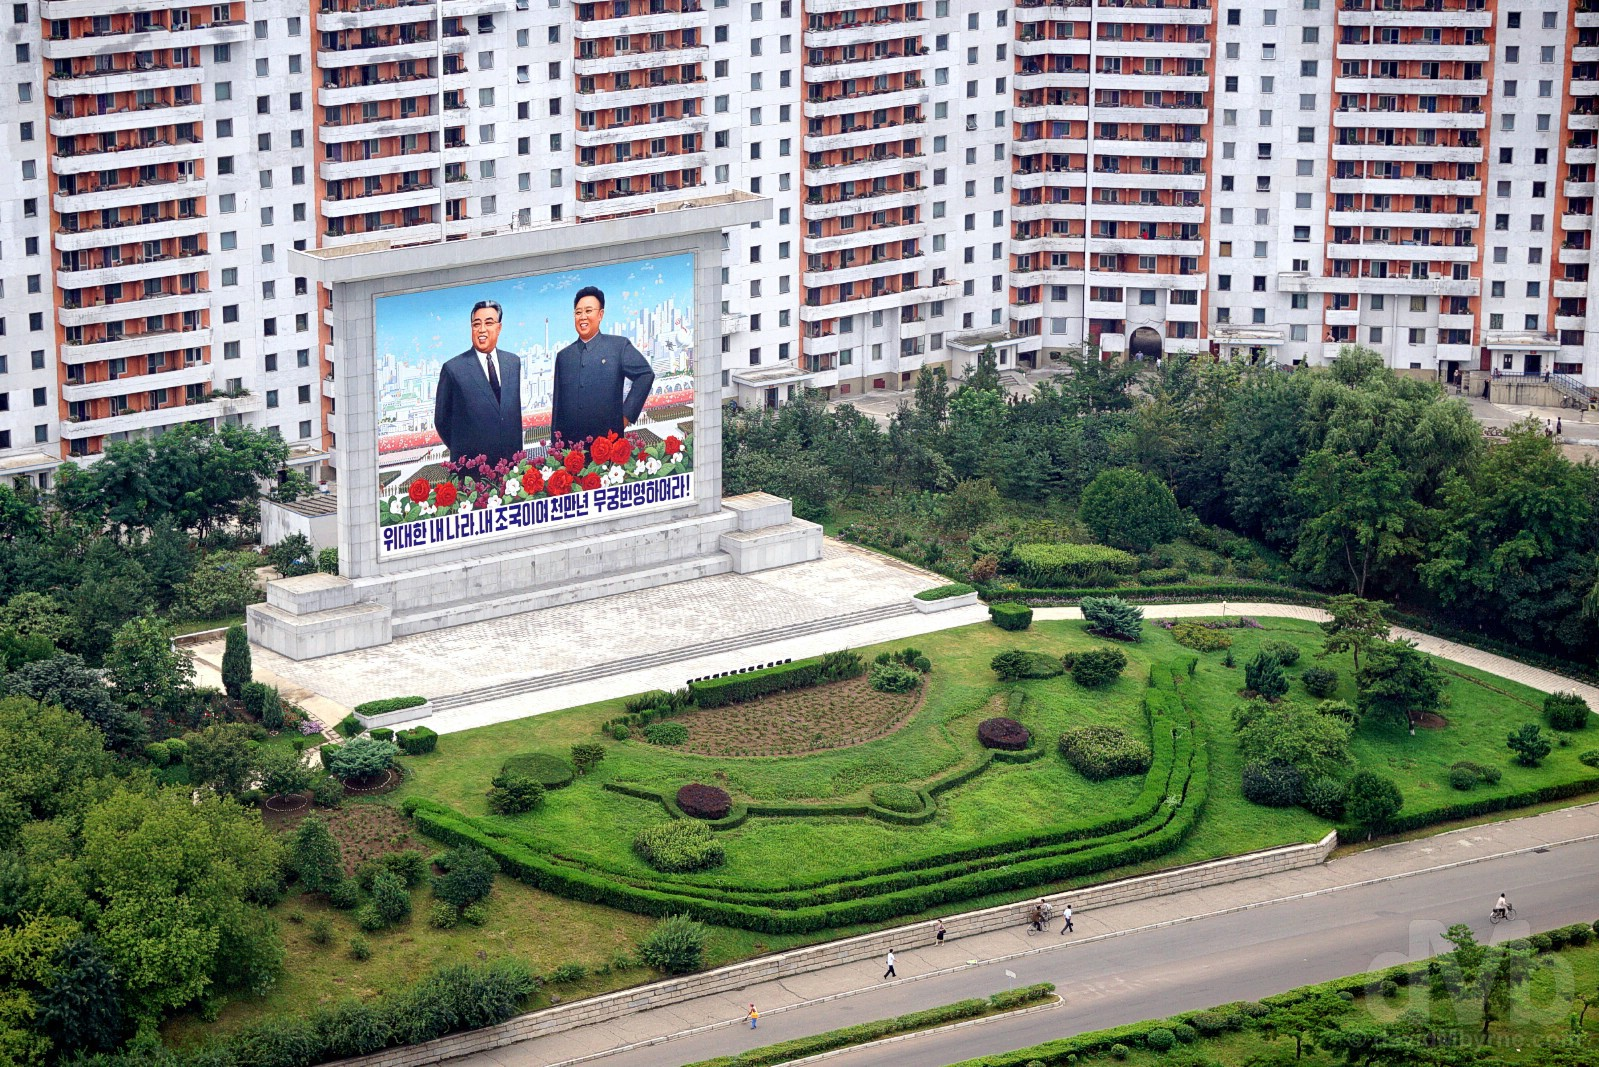 A massive Kim Il-sung & Kim Jong-il mural in the Mangyongdae District of Pyongyang, North Korea. August 16, 2017.